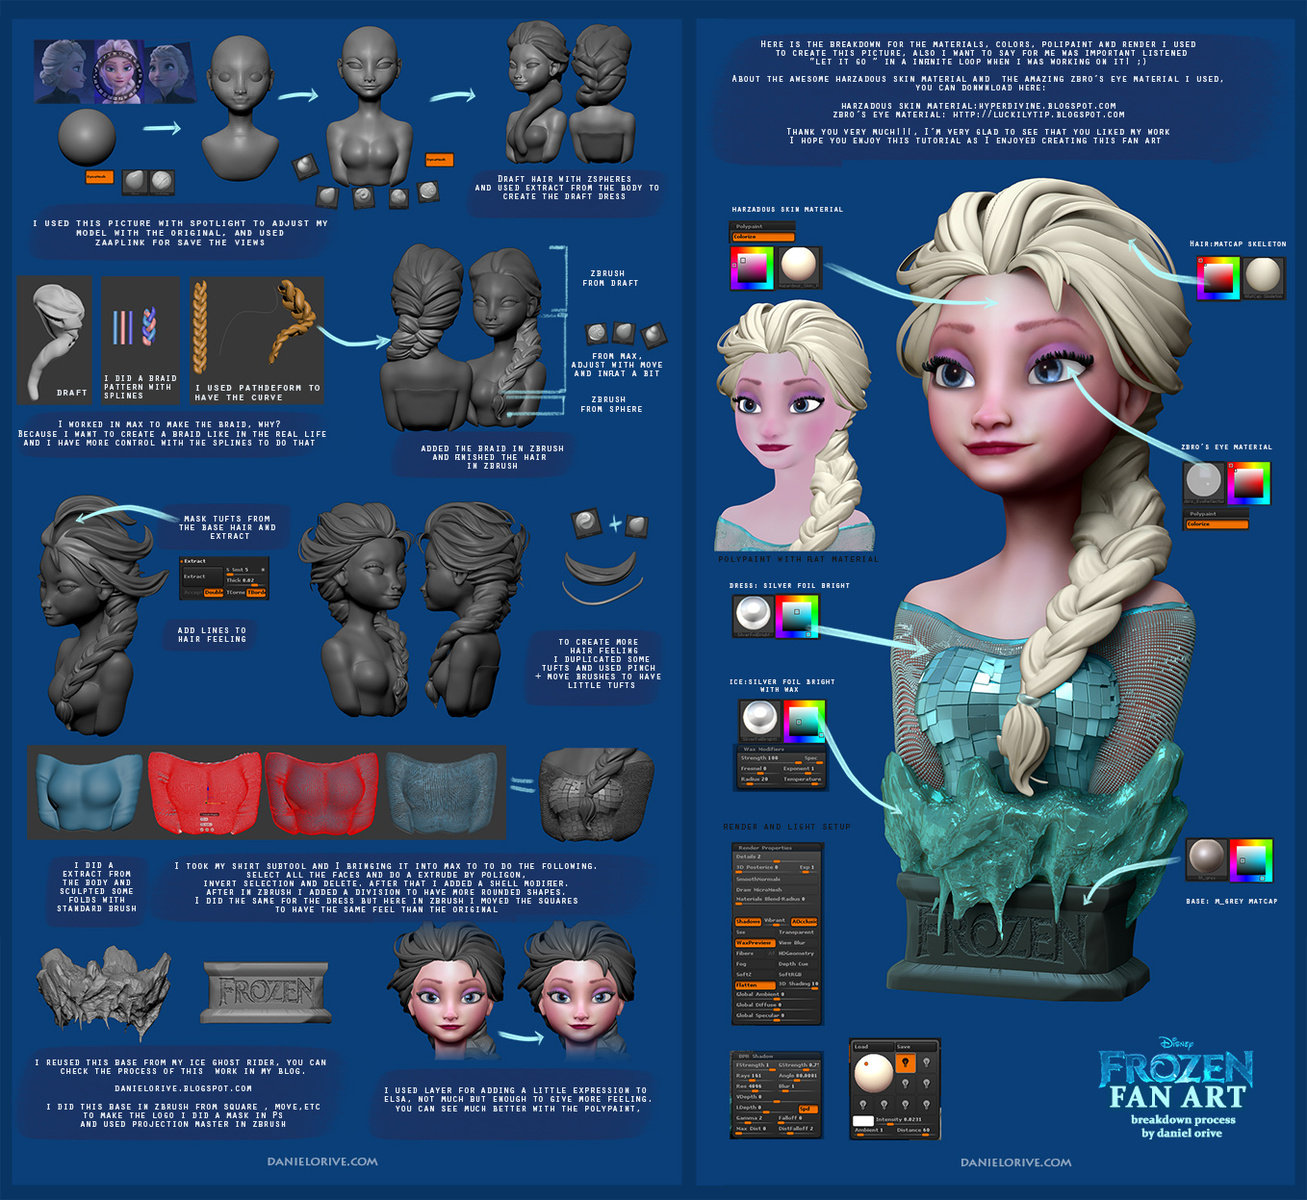 Frozen Fan Art Breakdown/tuto